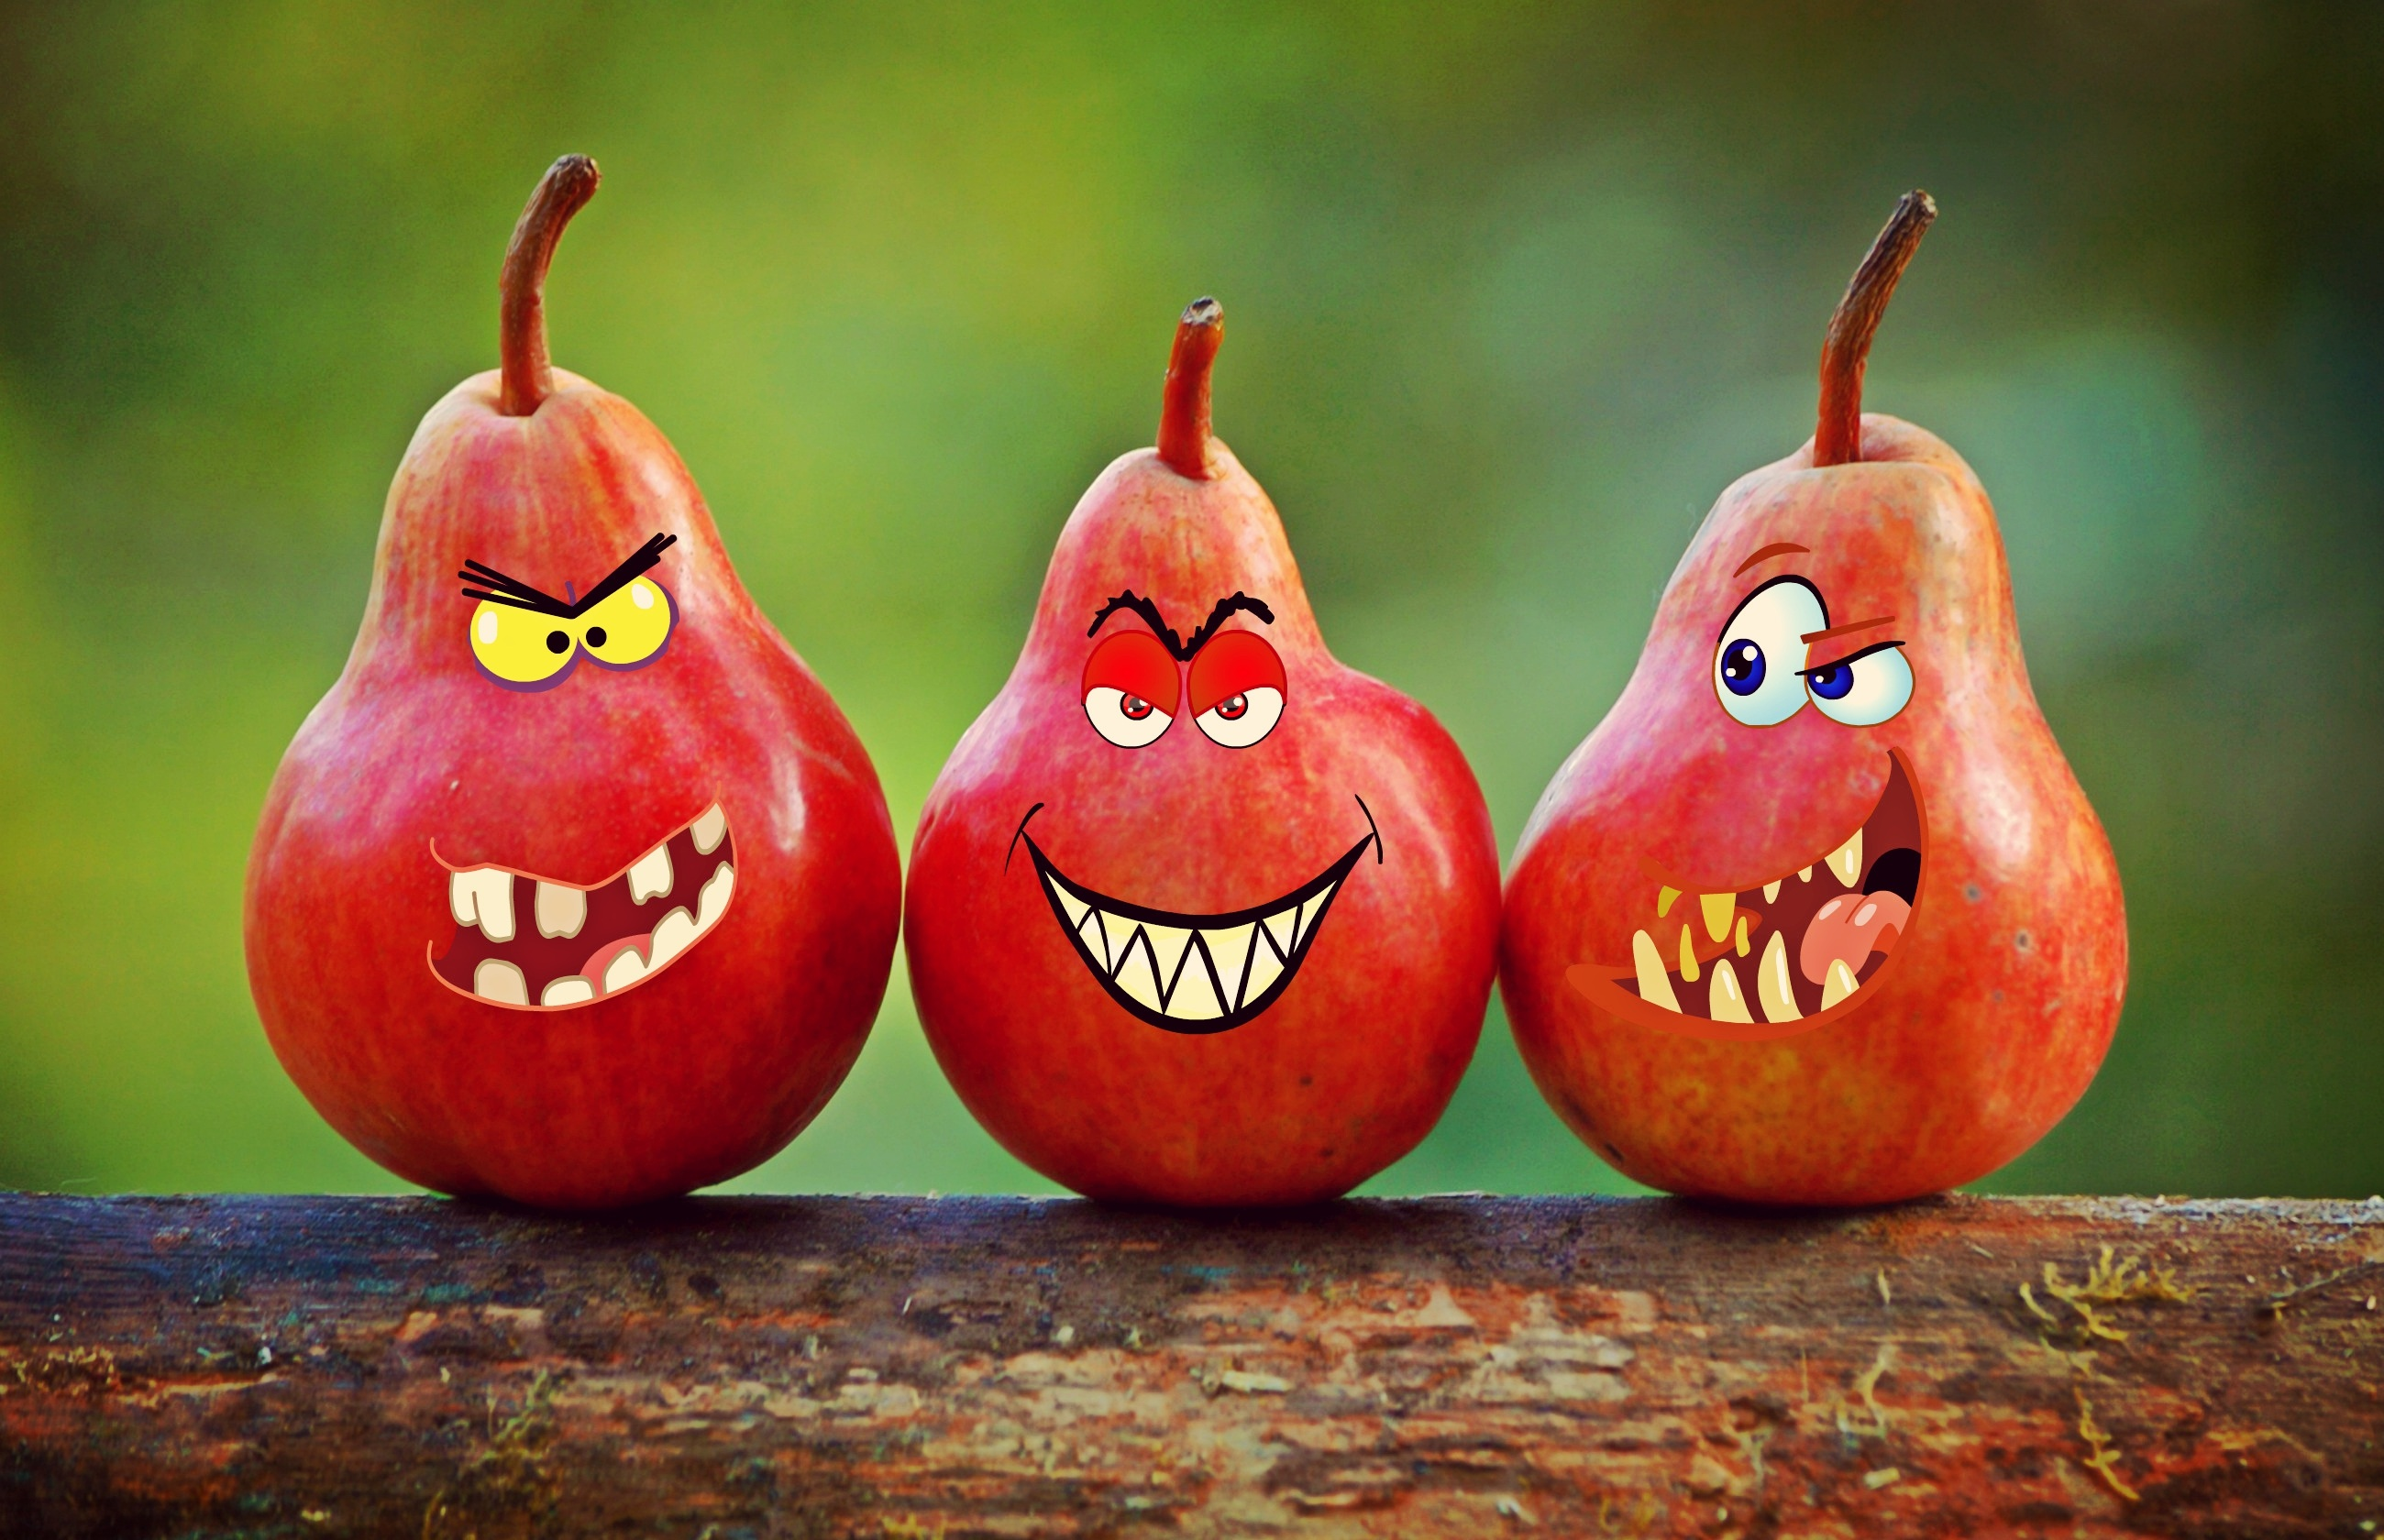 Angry red pears photo